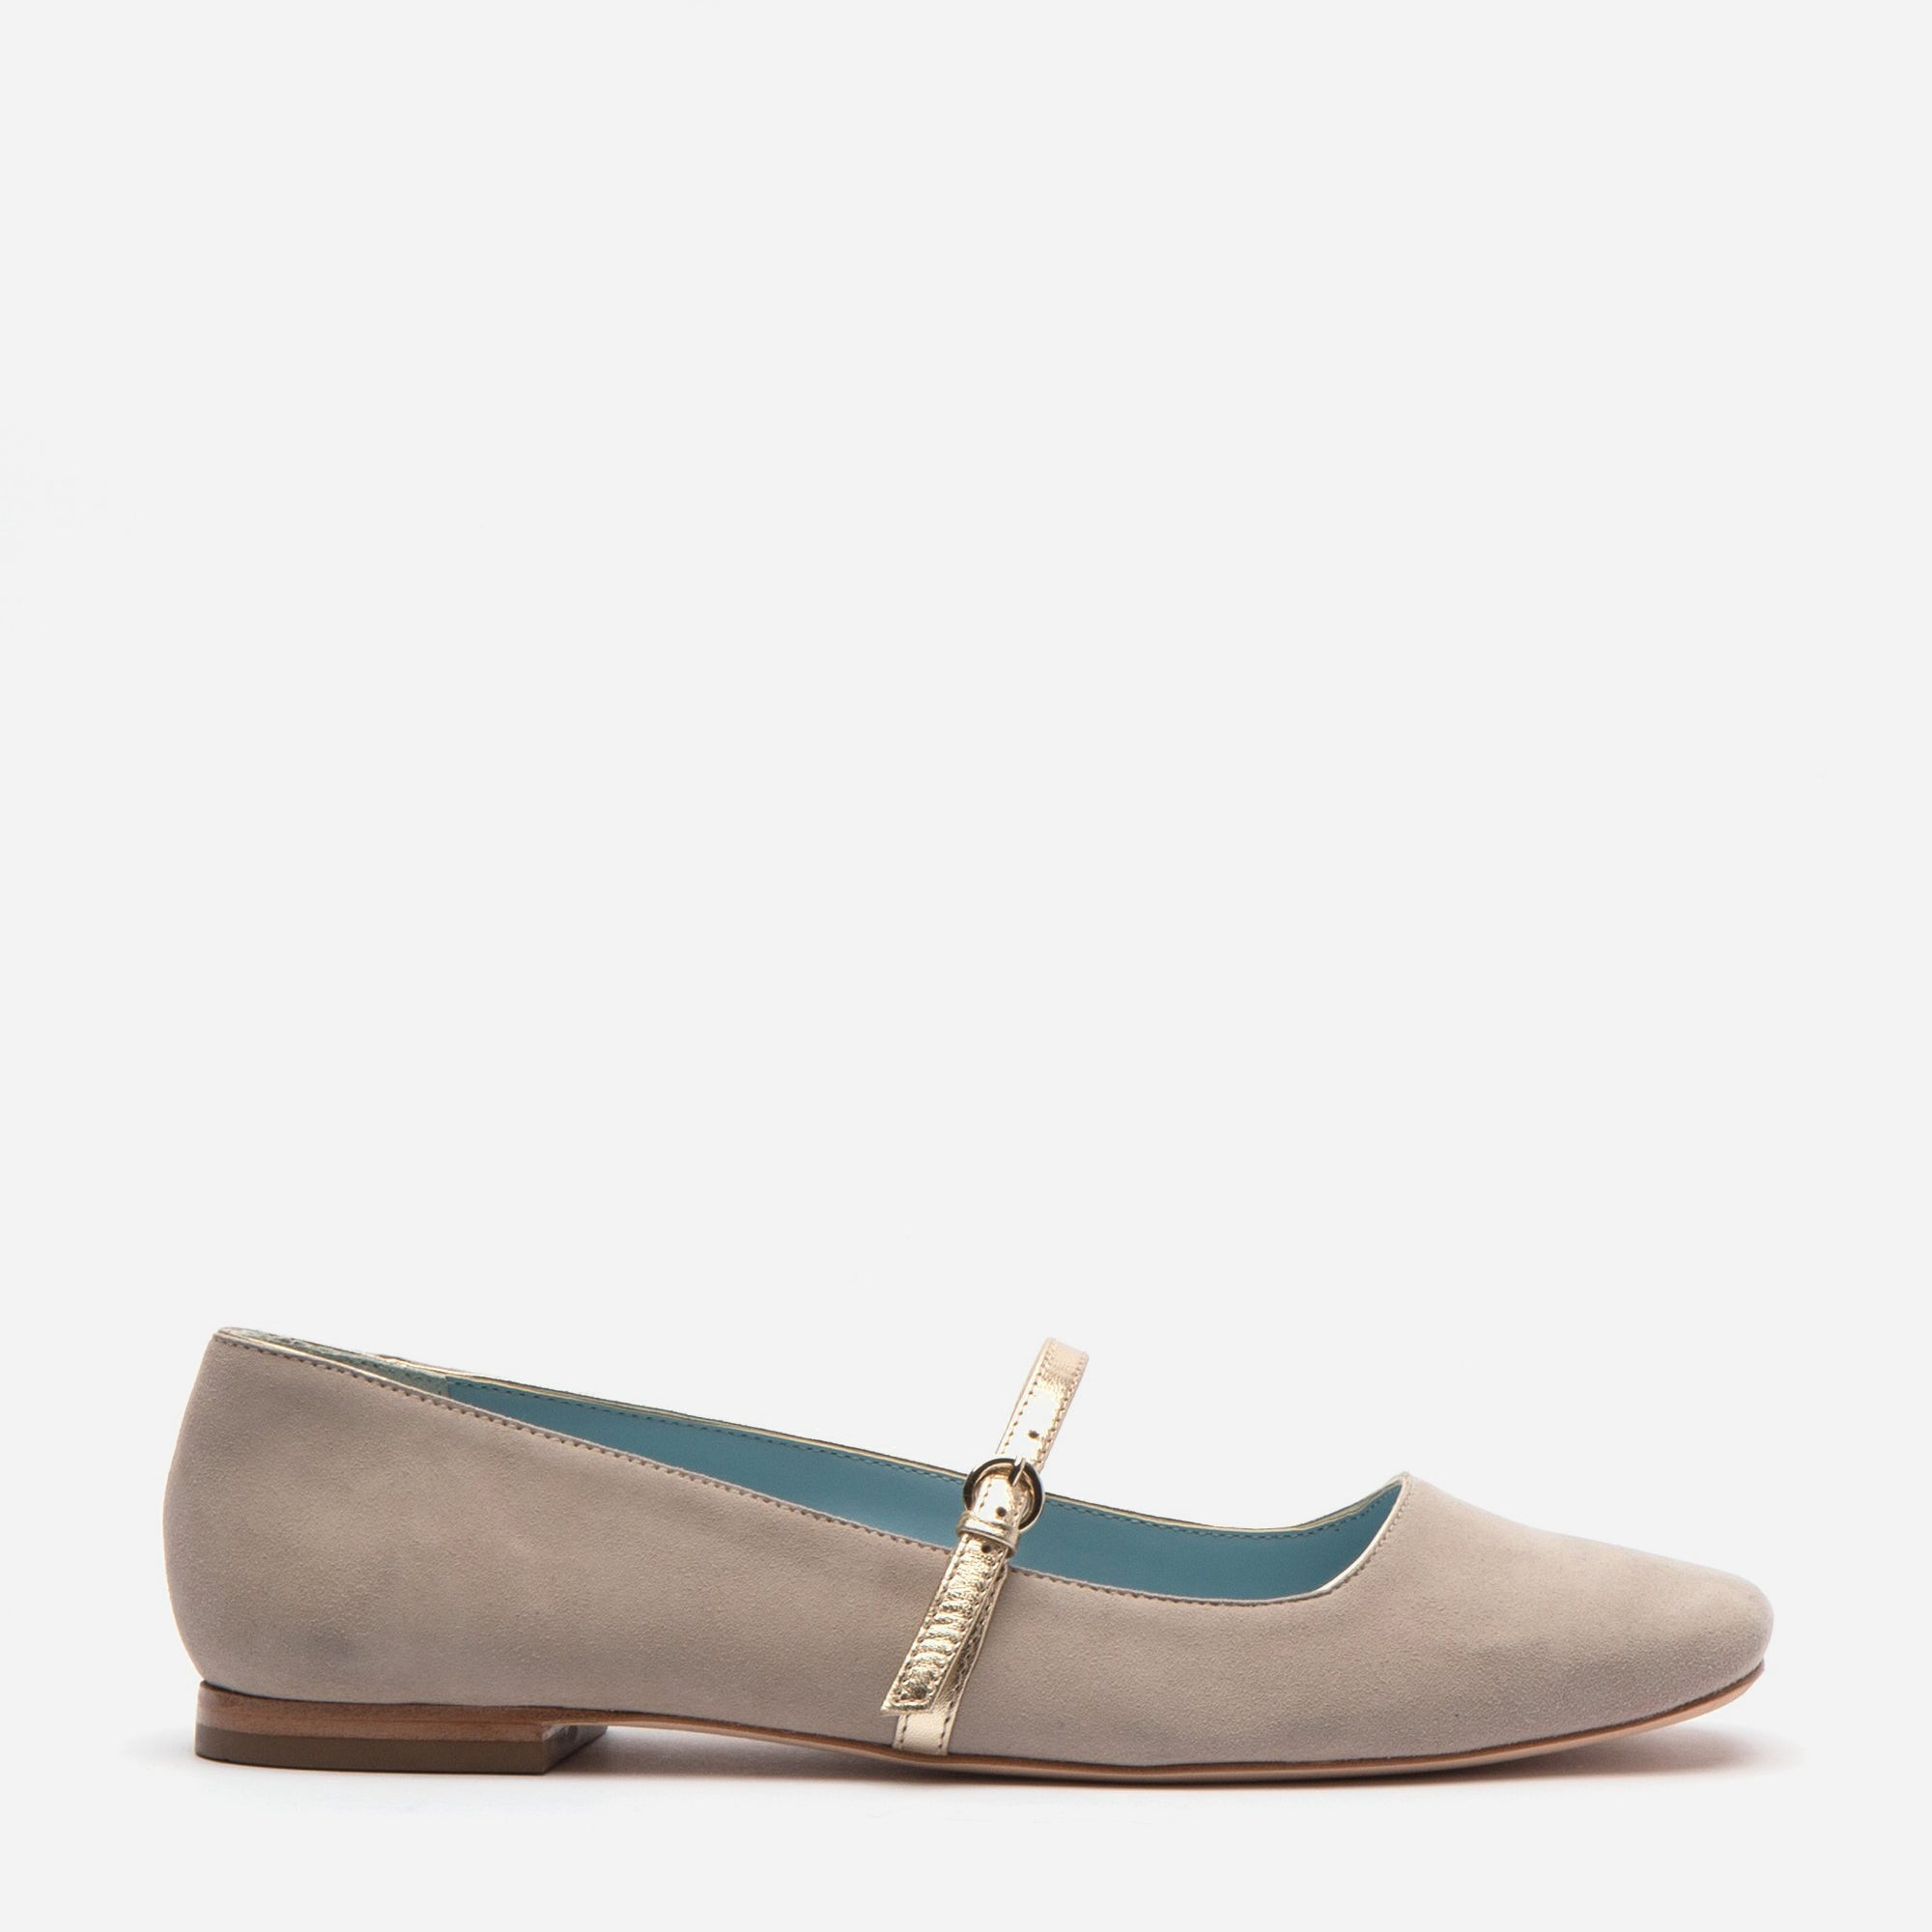 Joan Suede Mary Jane Flat Pearl Grey - Frances Valentine